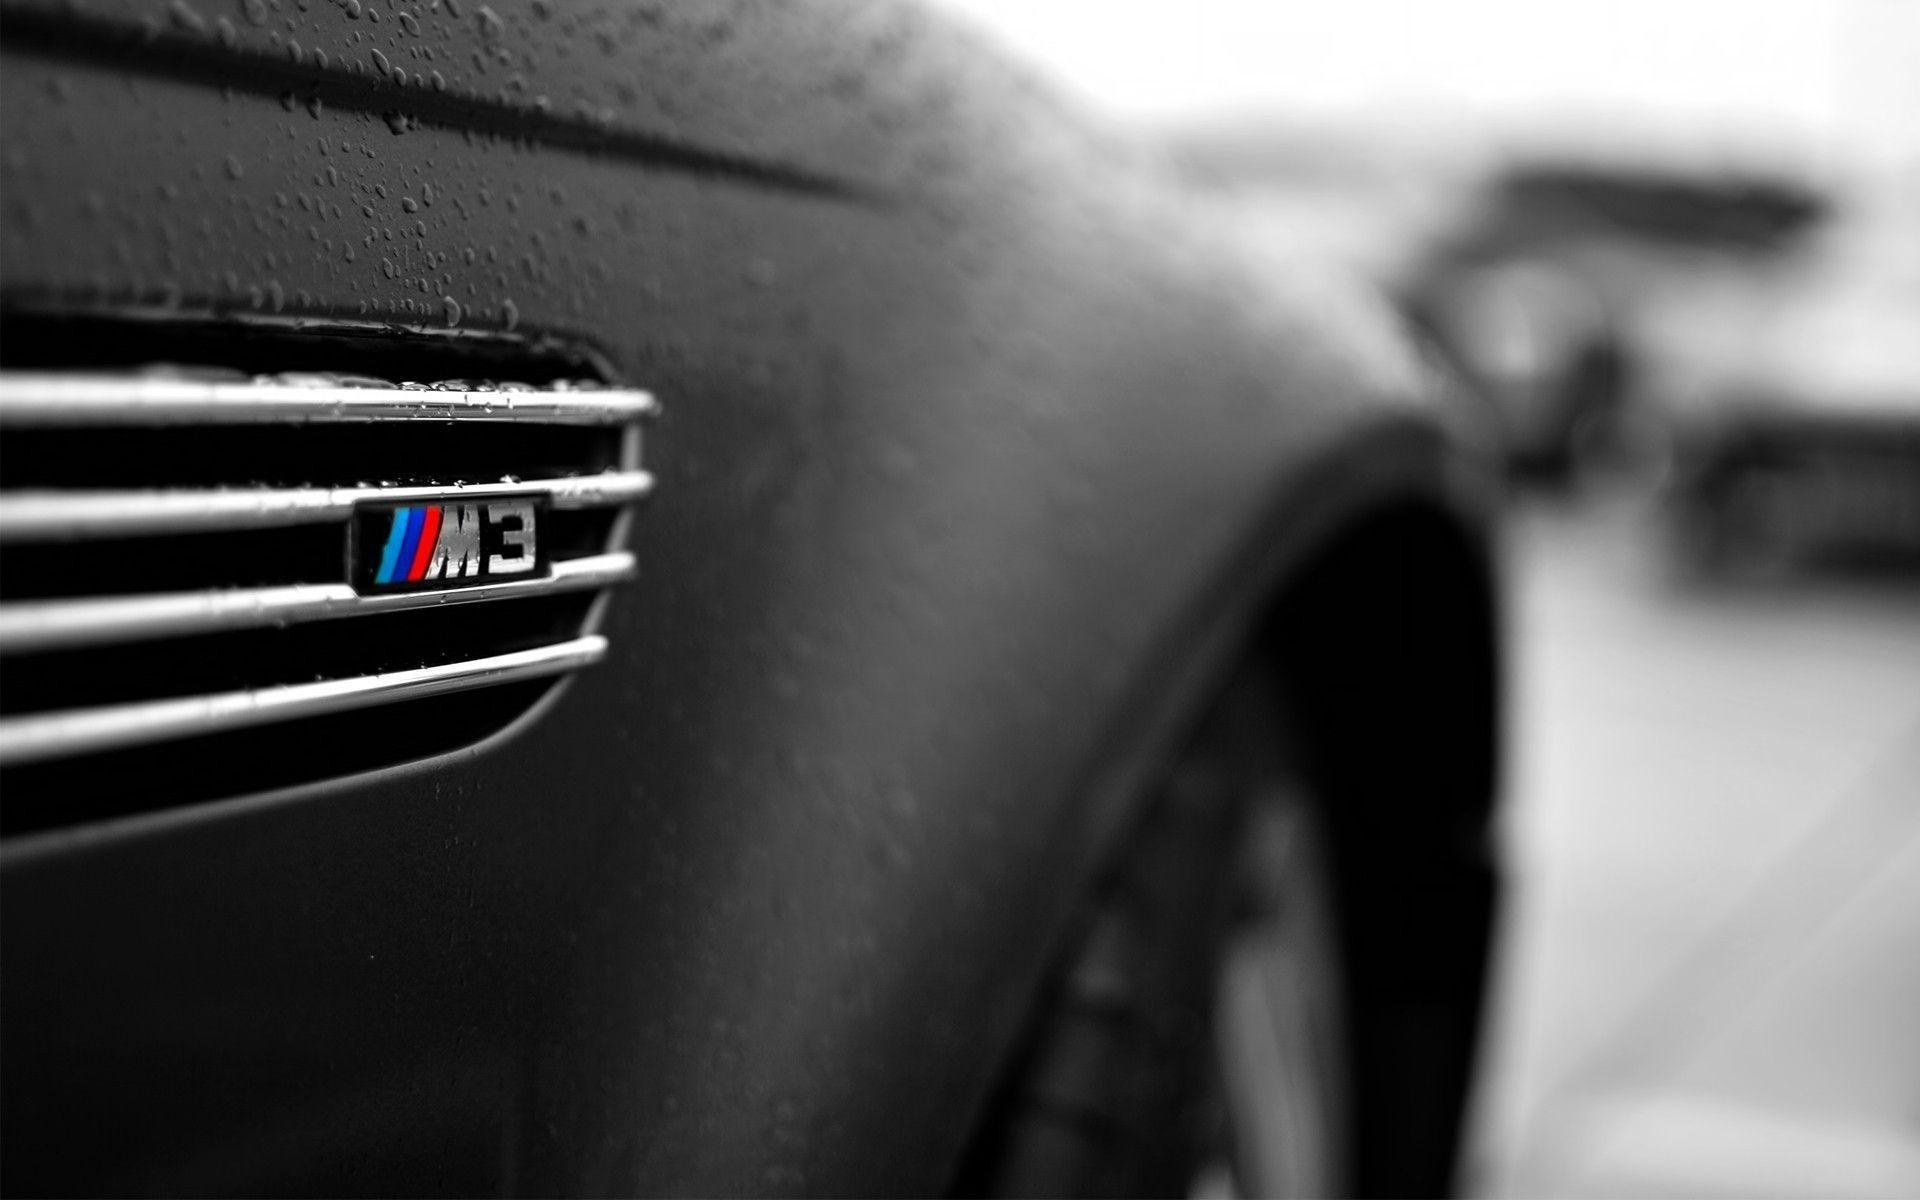 Bmw M3 Wallpapers - Full HD wallpaper search